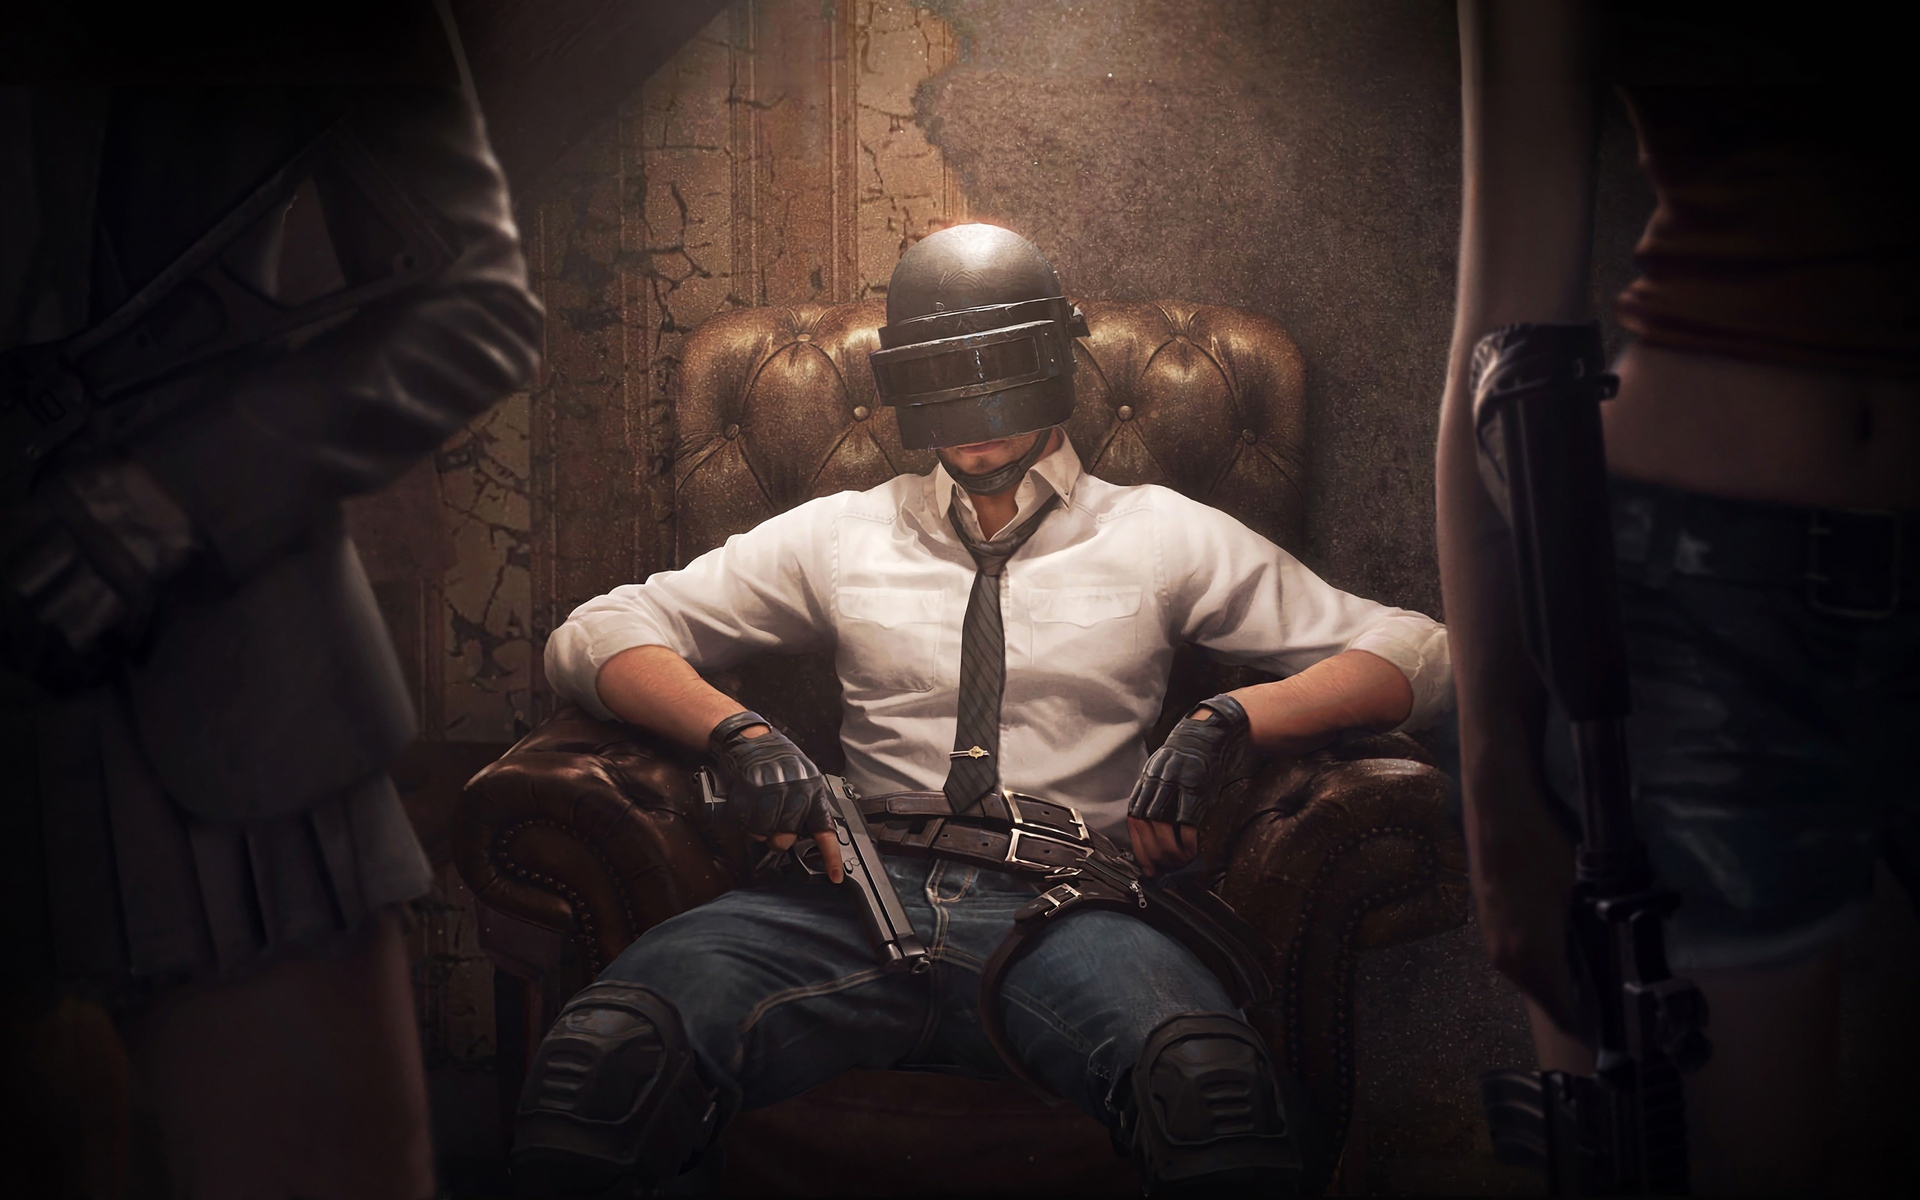 Pubg Wallpaper 1920x1080: 1920x1200 Pubg Android Game 4k 1080P Resolution HD 4k